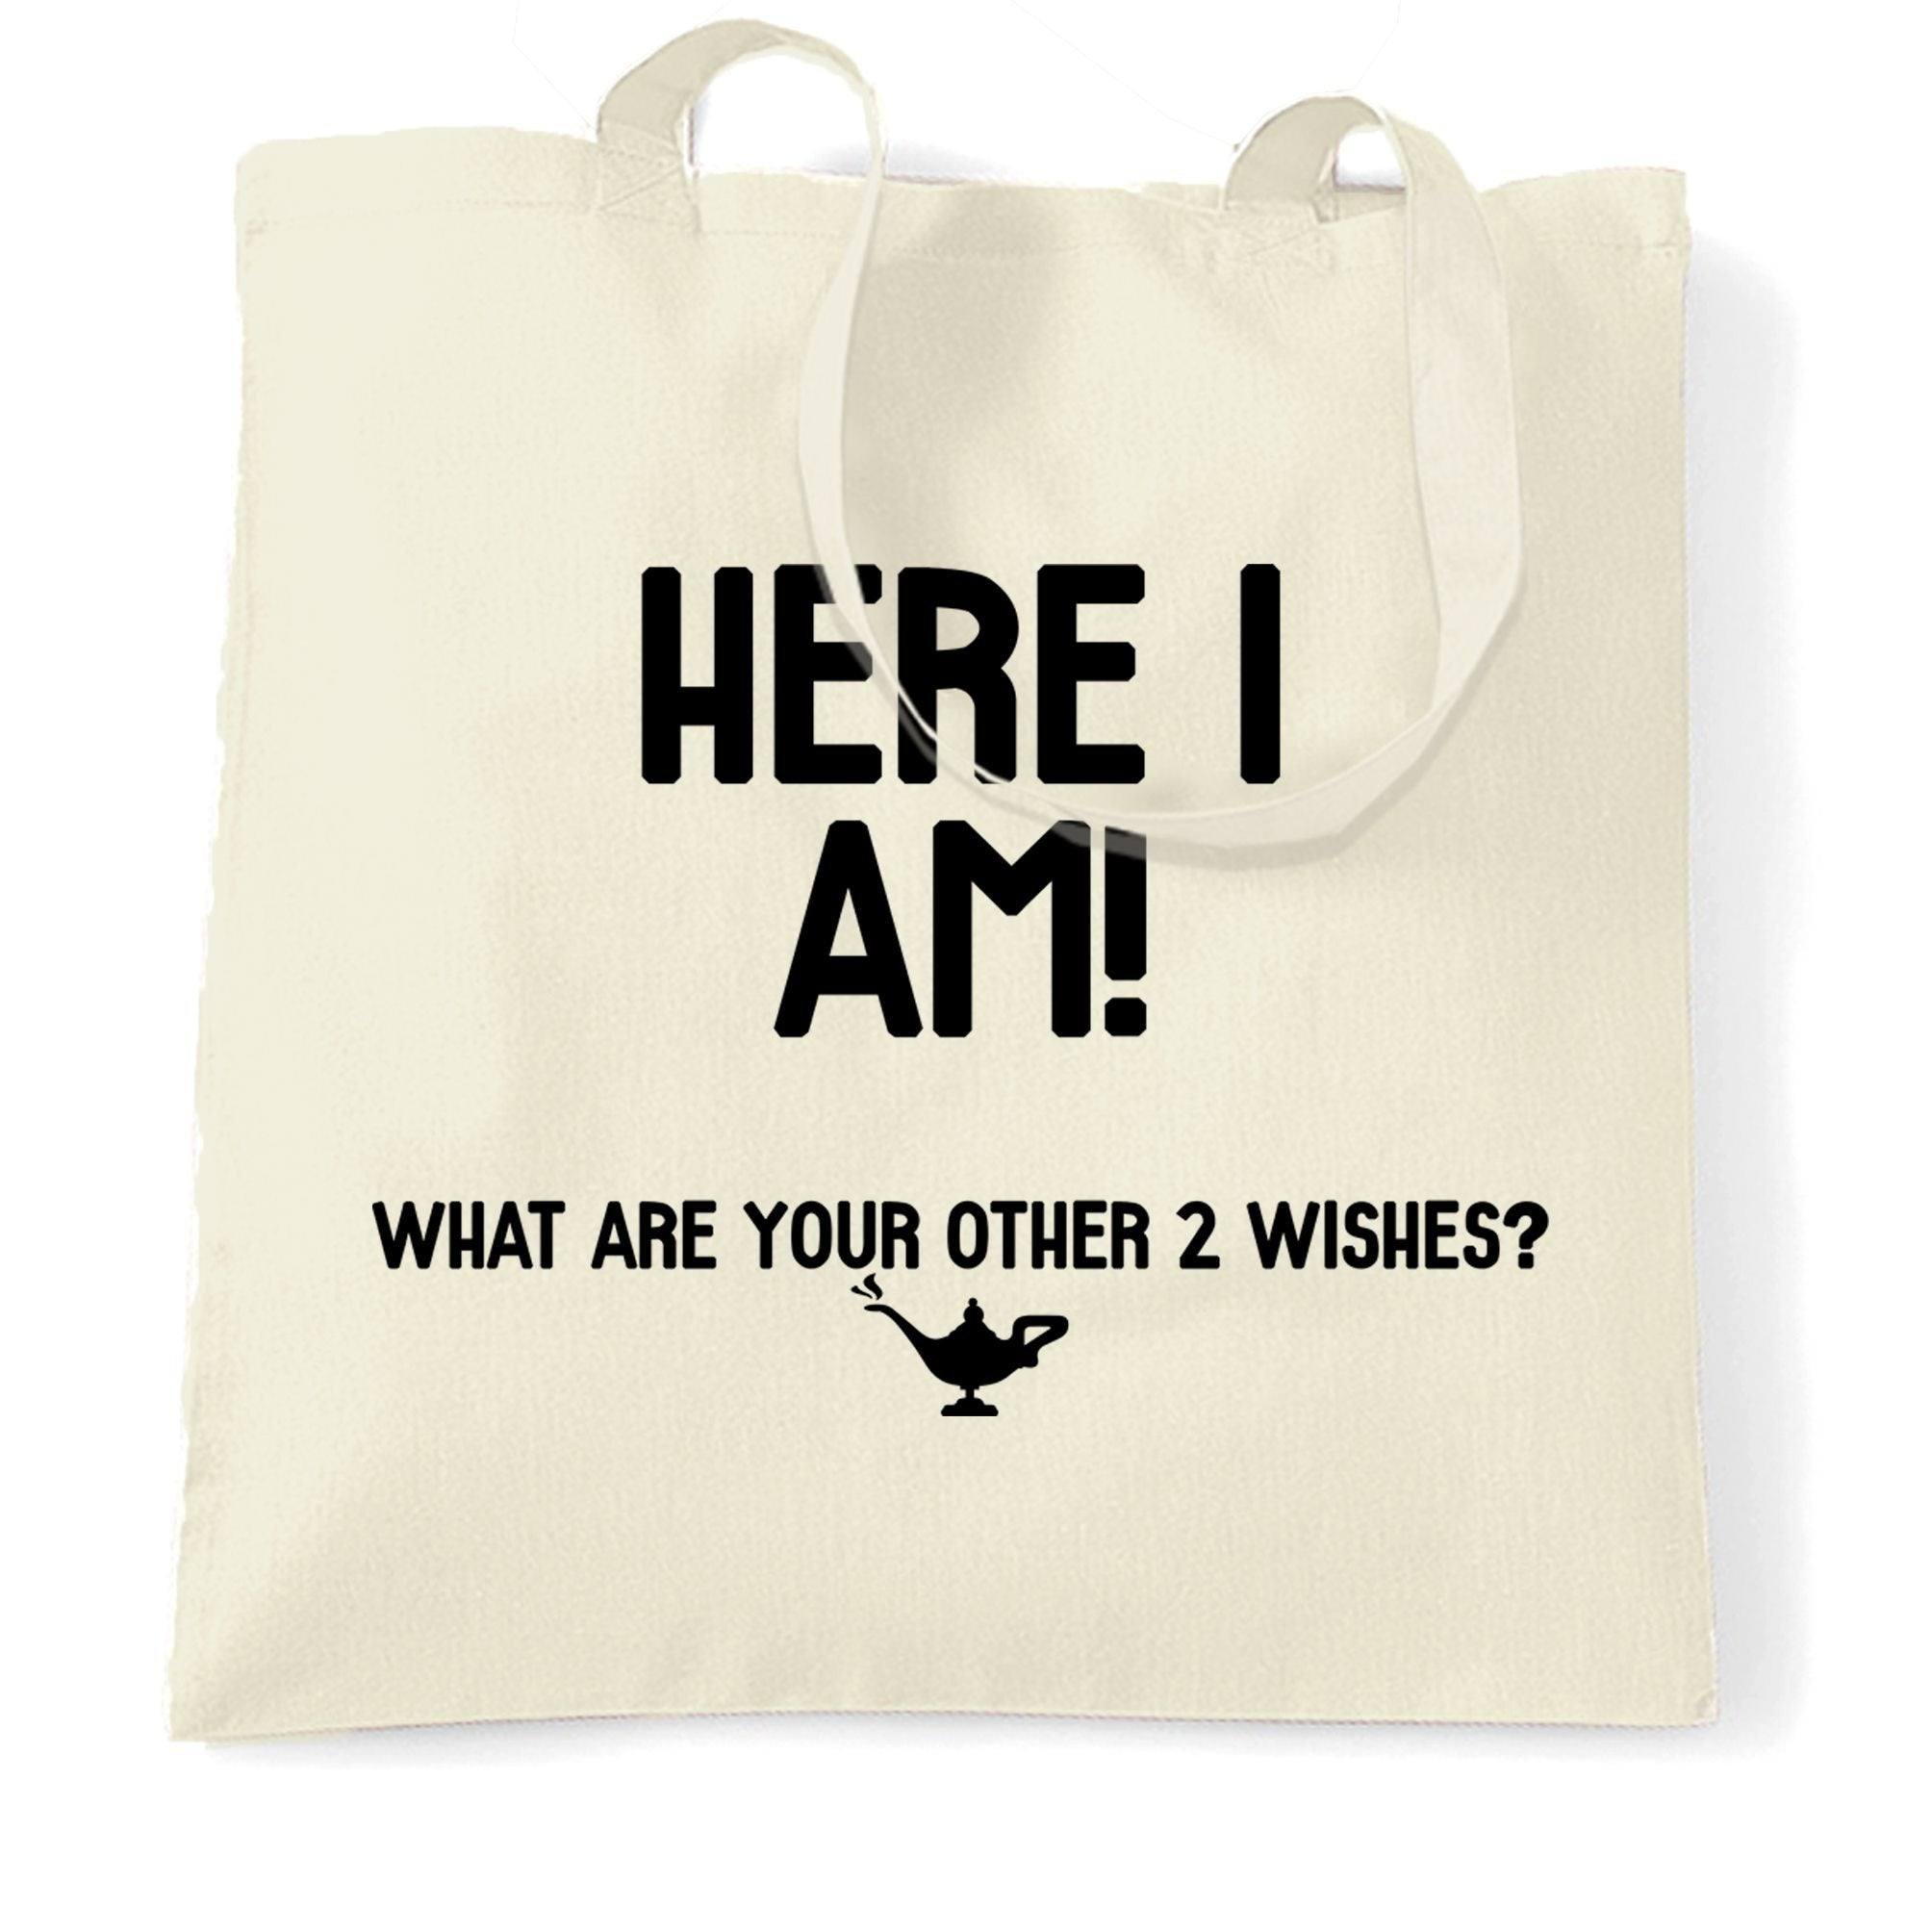 Sassy Tote Bag Here I Am! What Are Your Other 2 Wishes?